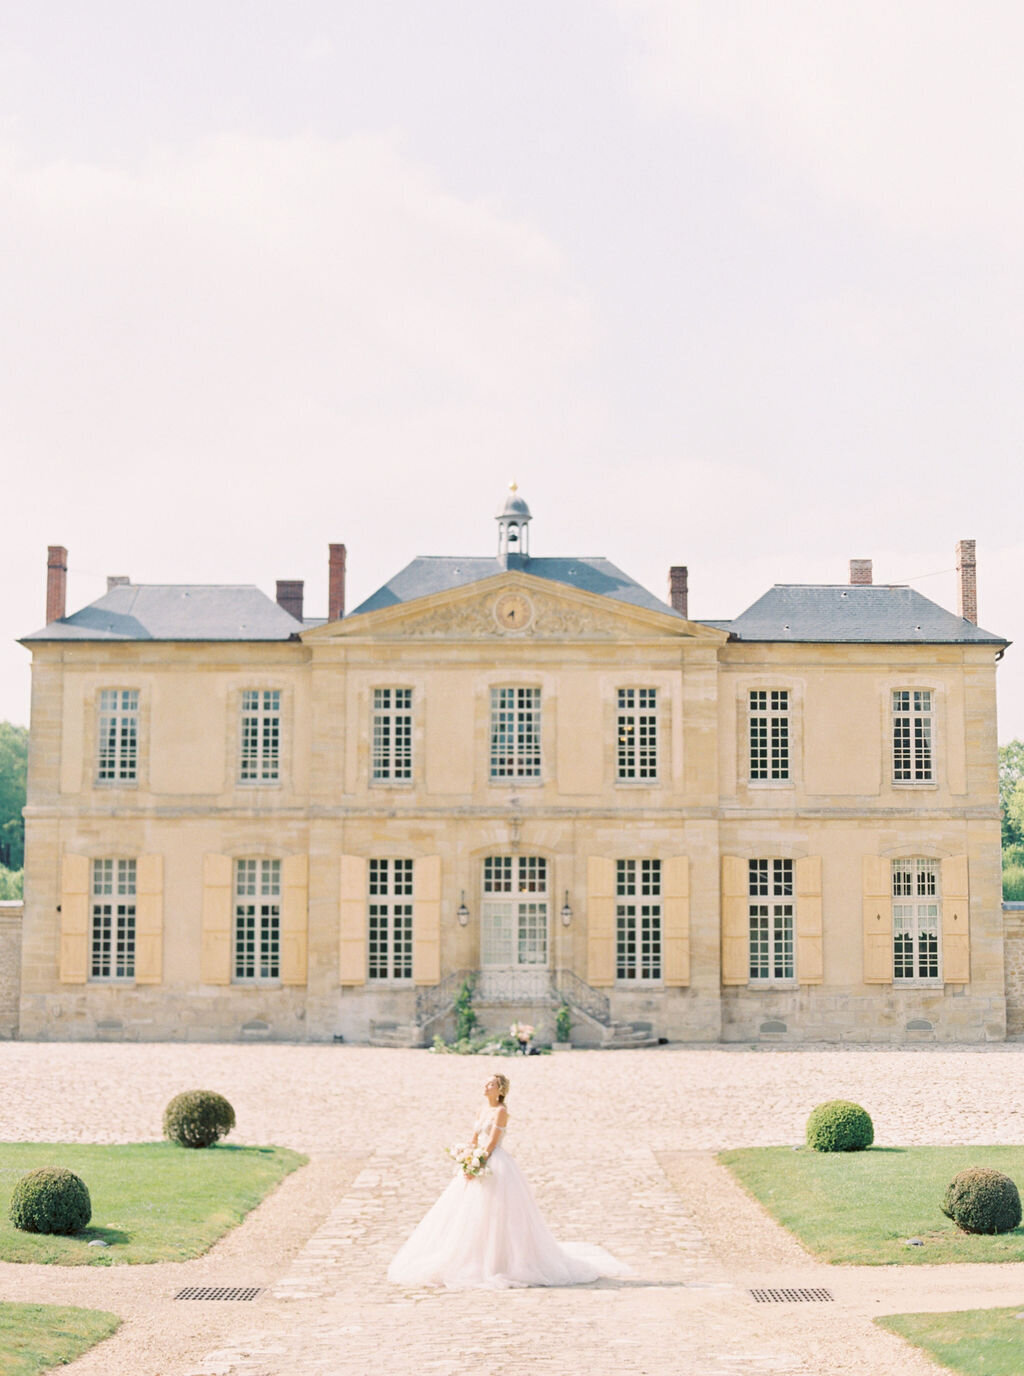 Chateau-de-Villette-wedding-Floraison22